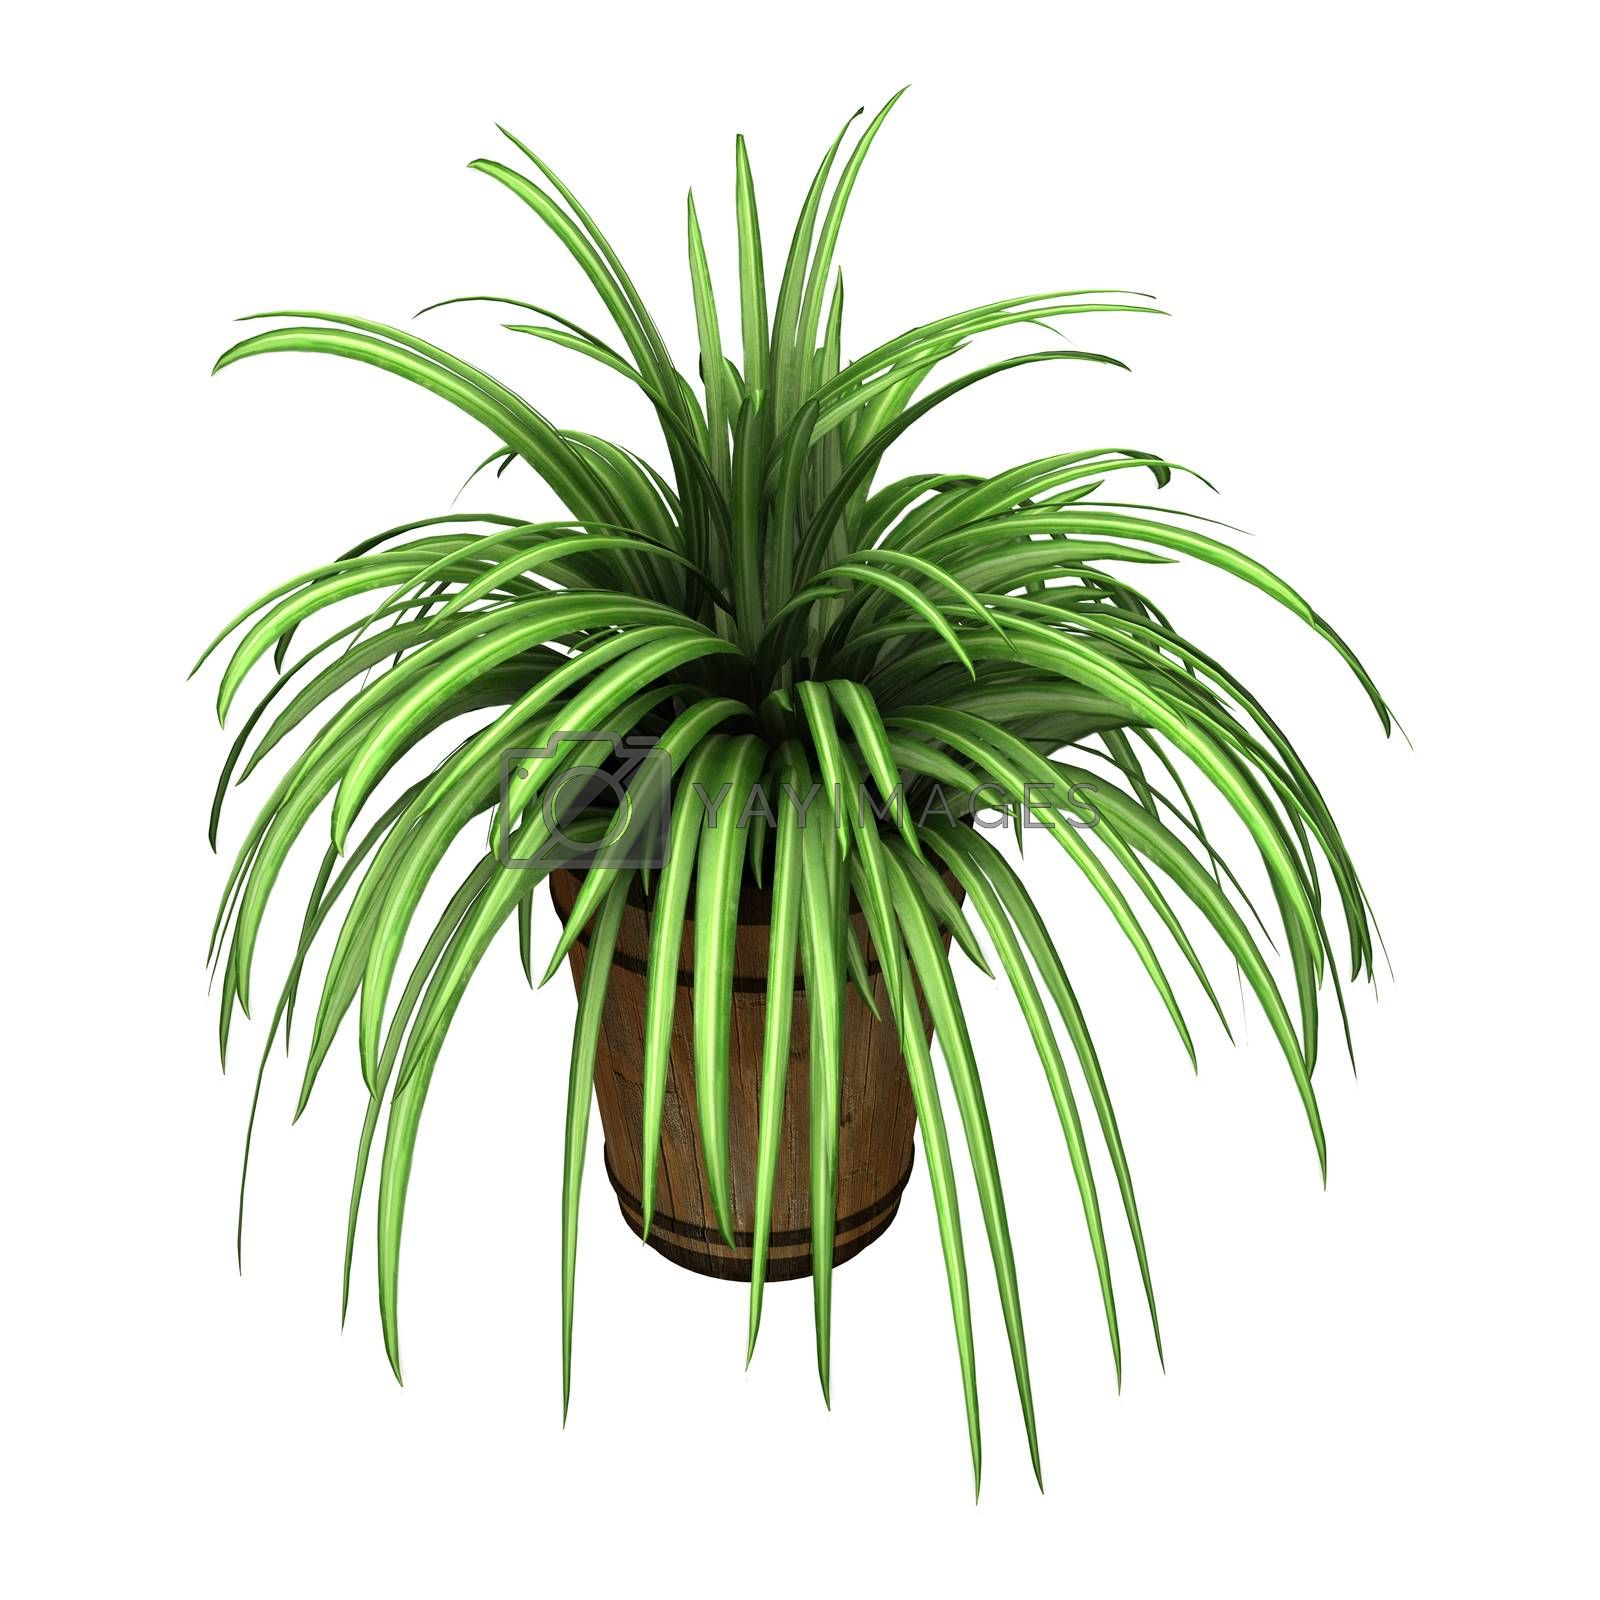 3D digital render of a spider plant in a flower pot isolated on white background